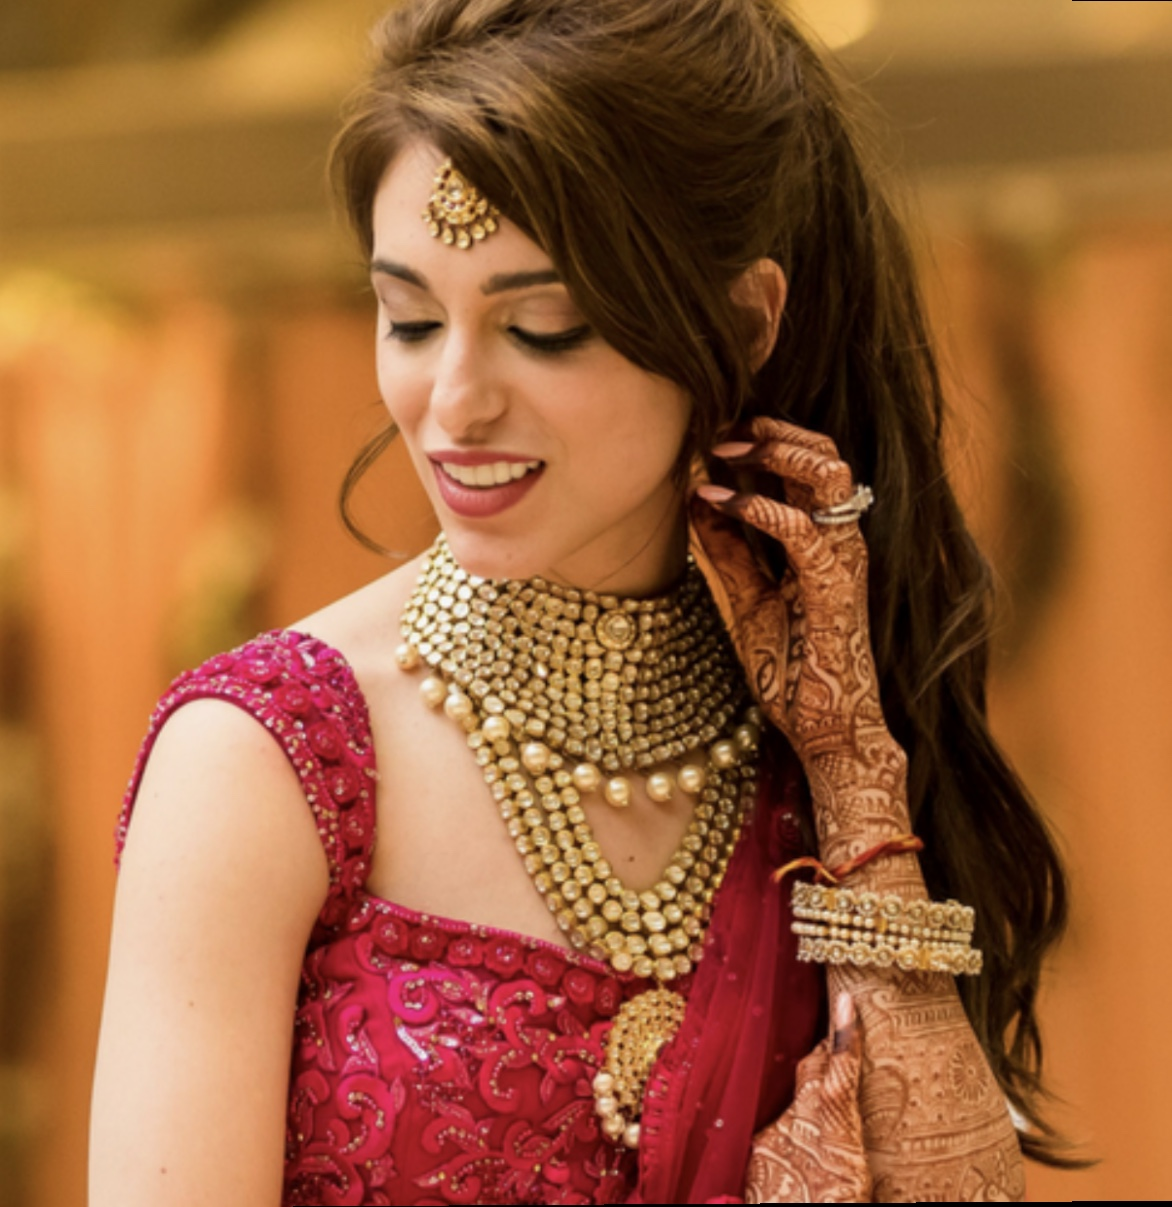 gold jewellery, khurana jewellery house